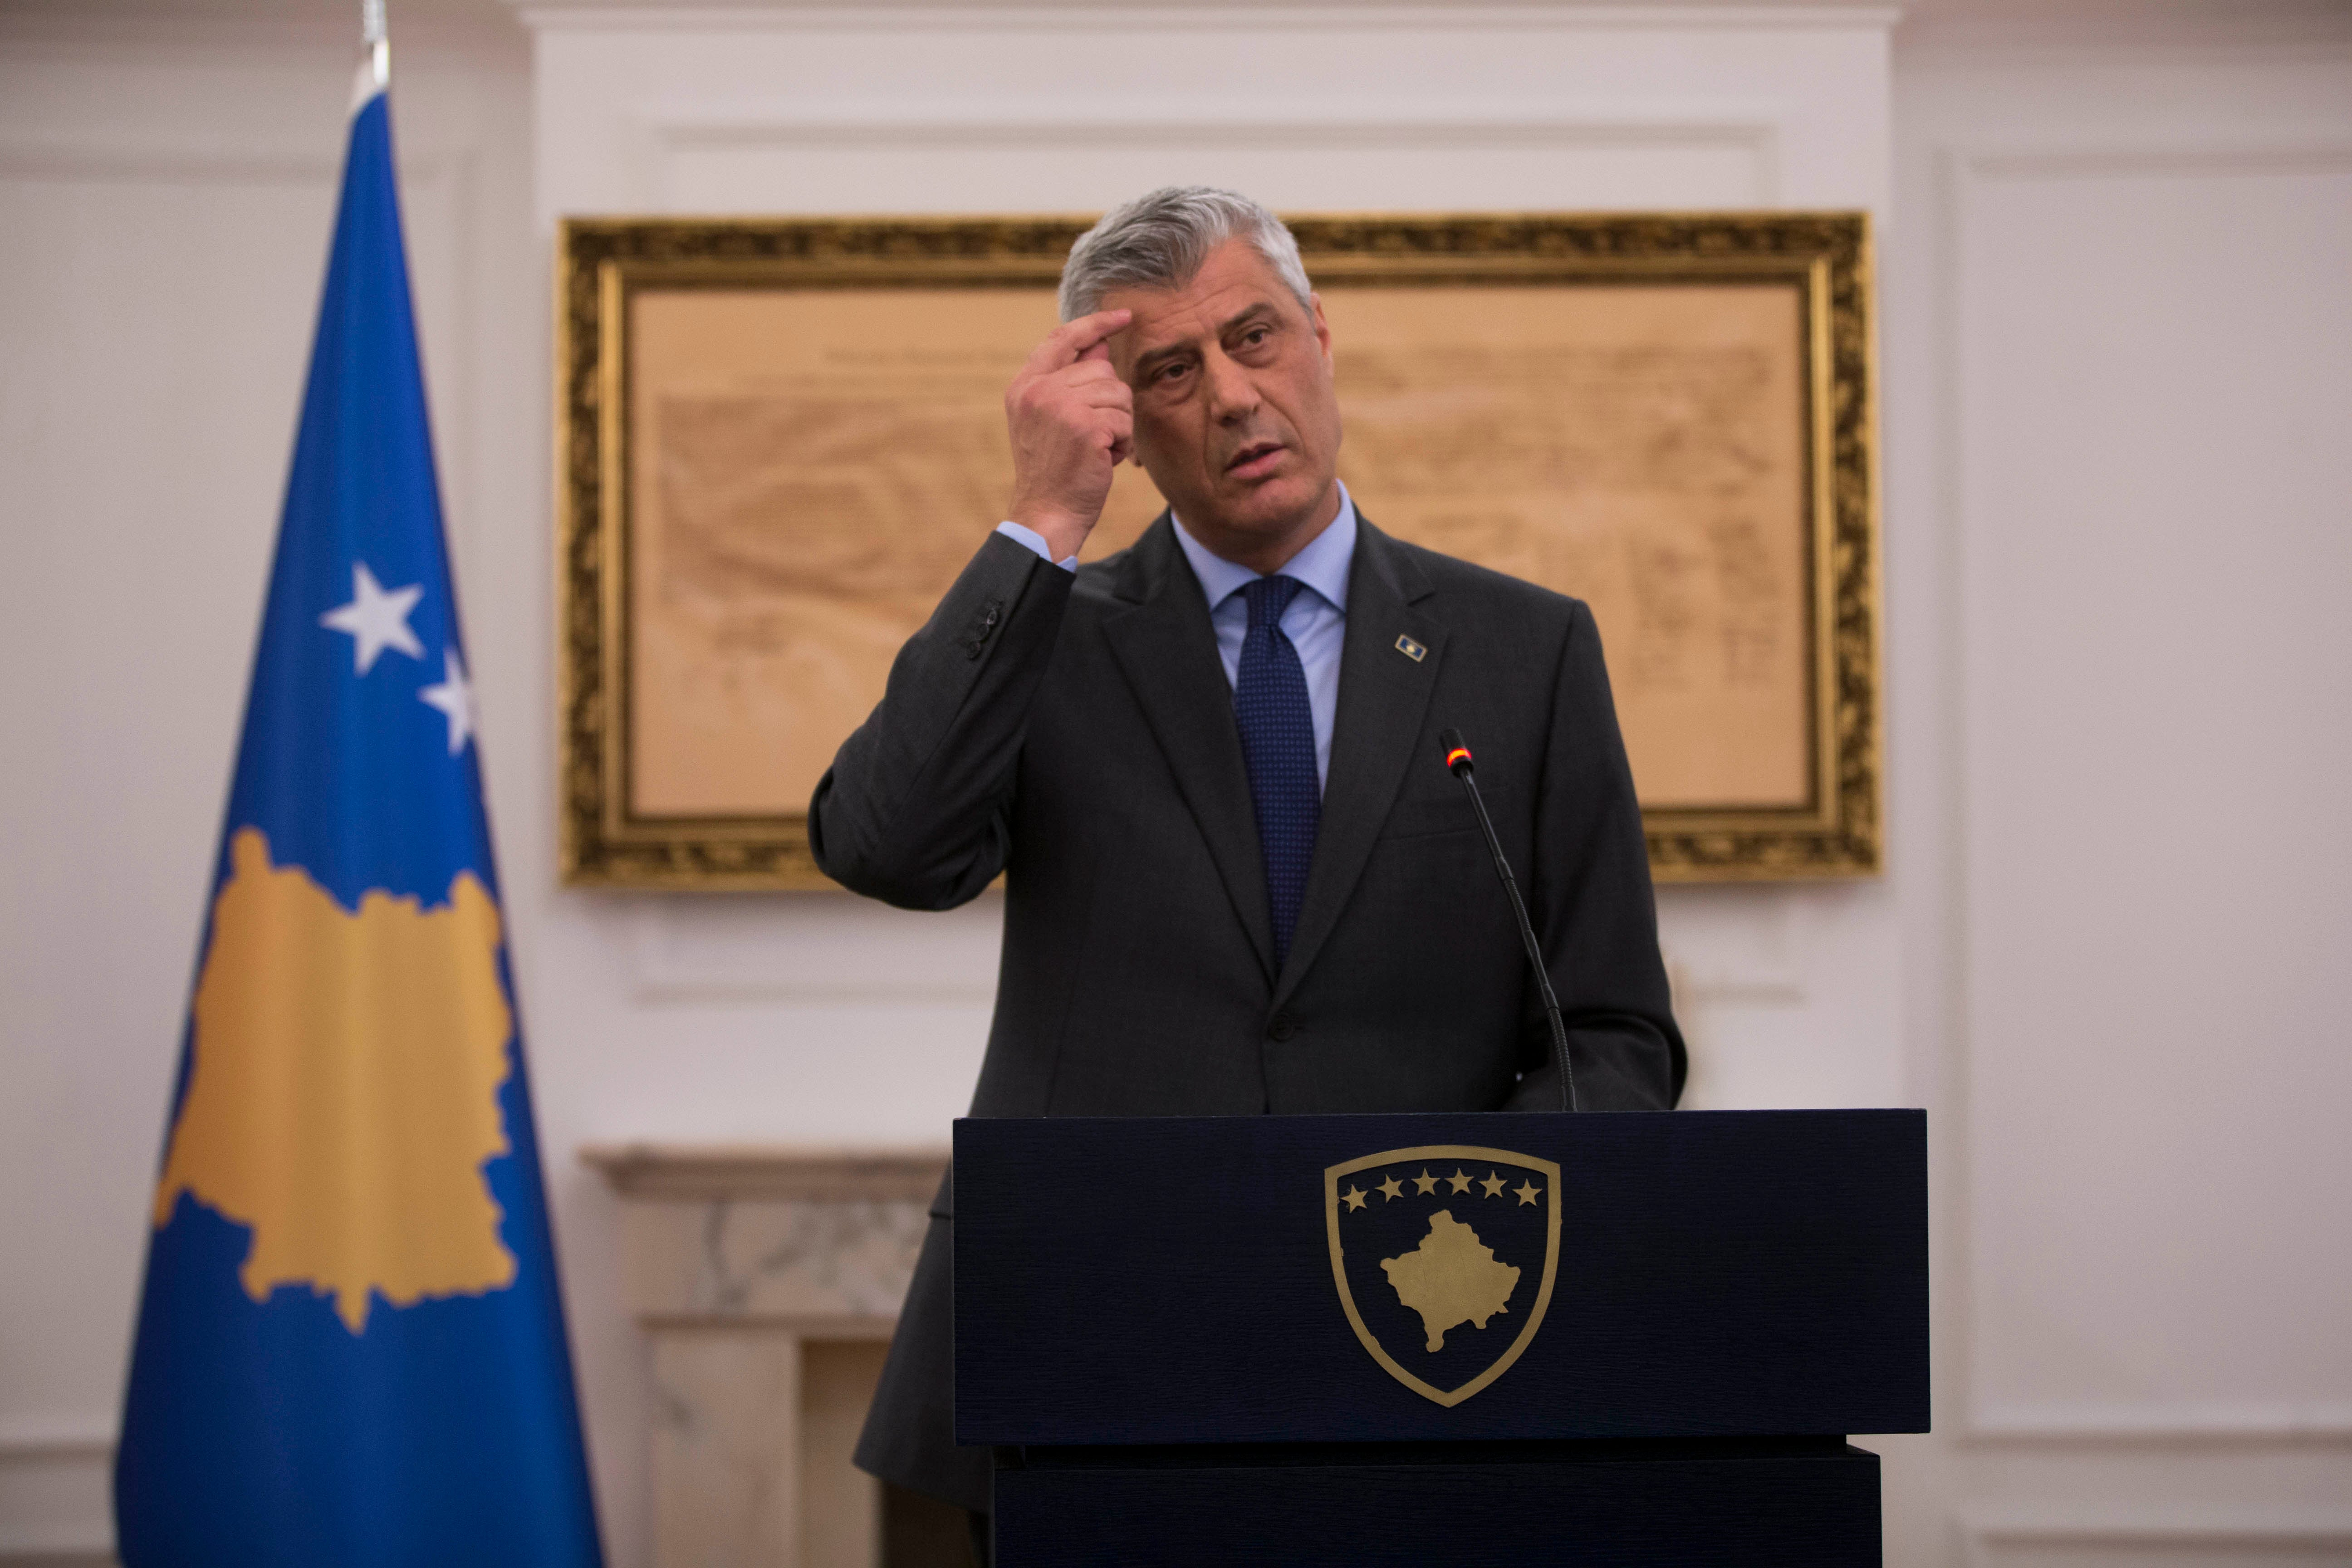 Kosovo War Crimes Court Can Promote Justice on All Sides